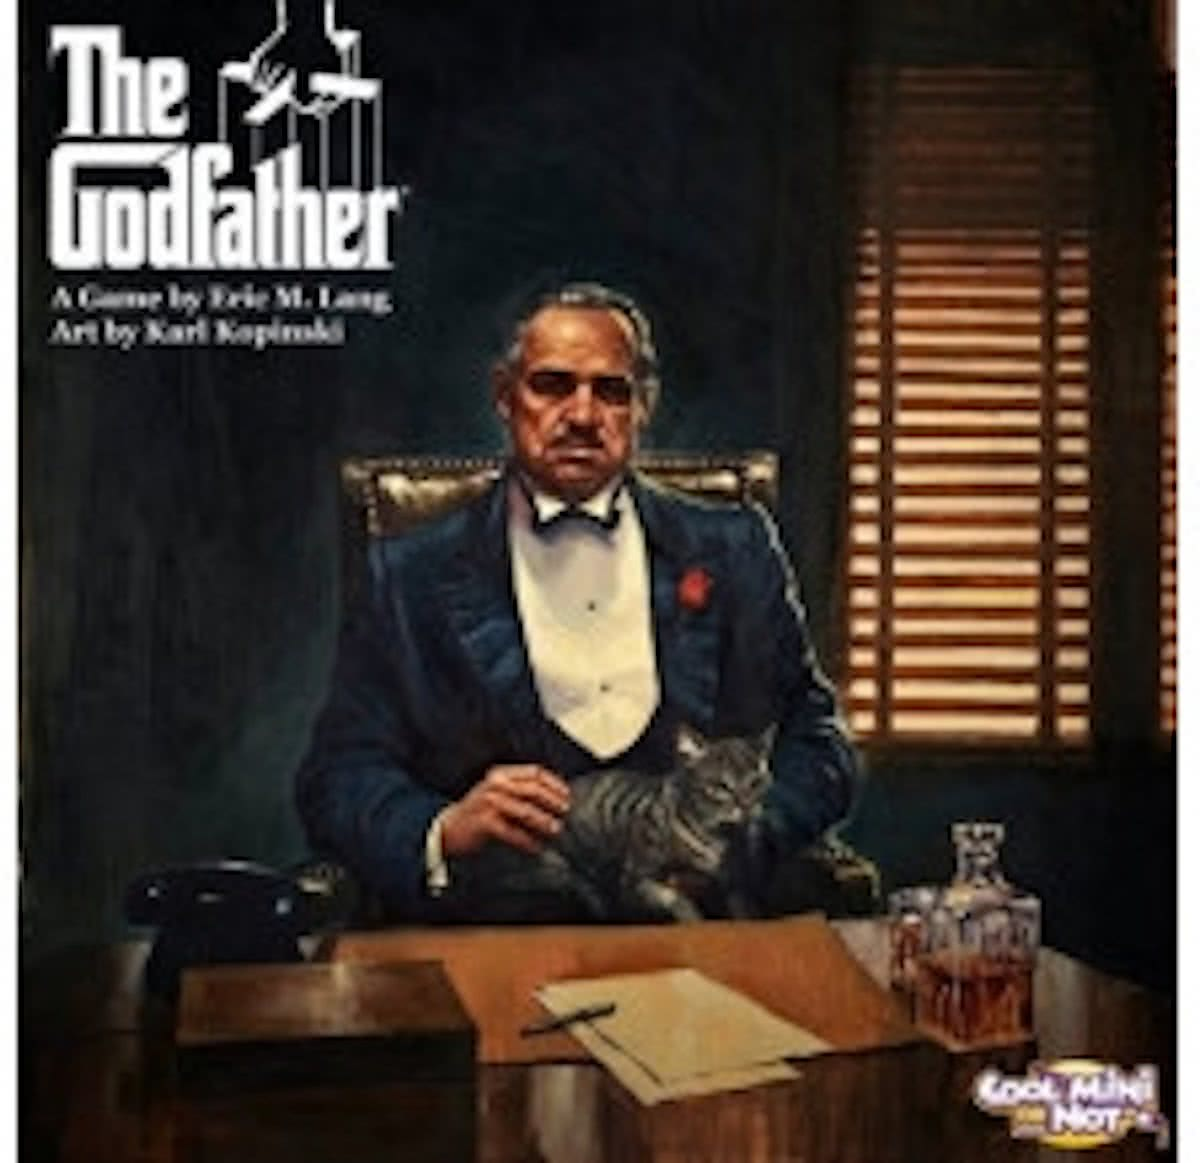 The-Godfather-The-Board-Game